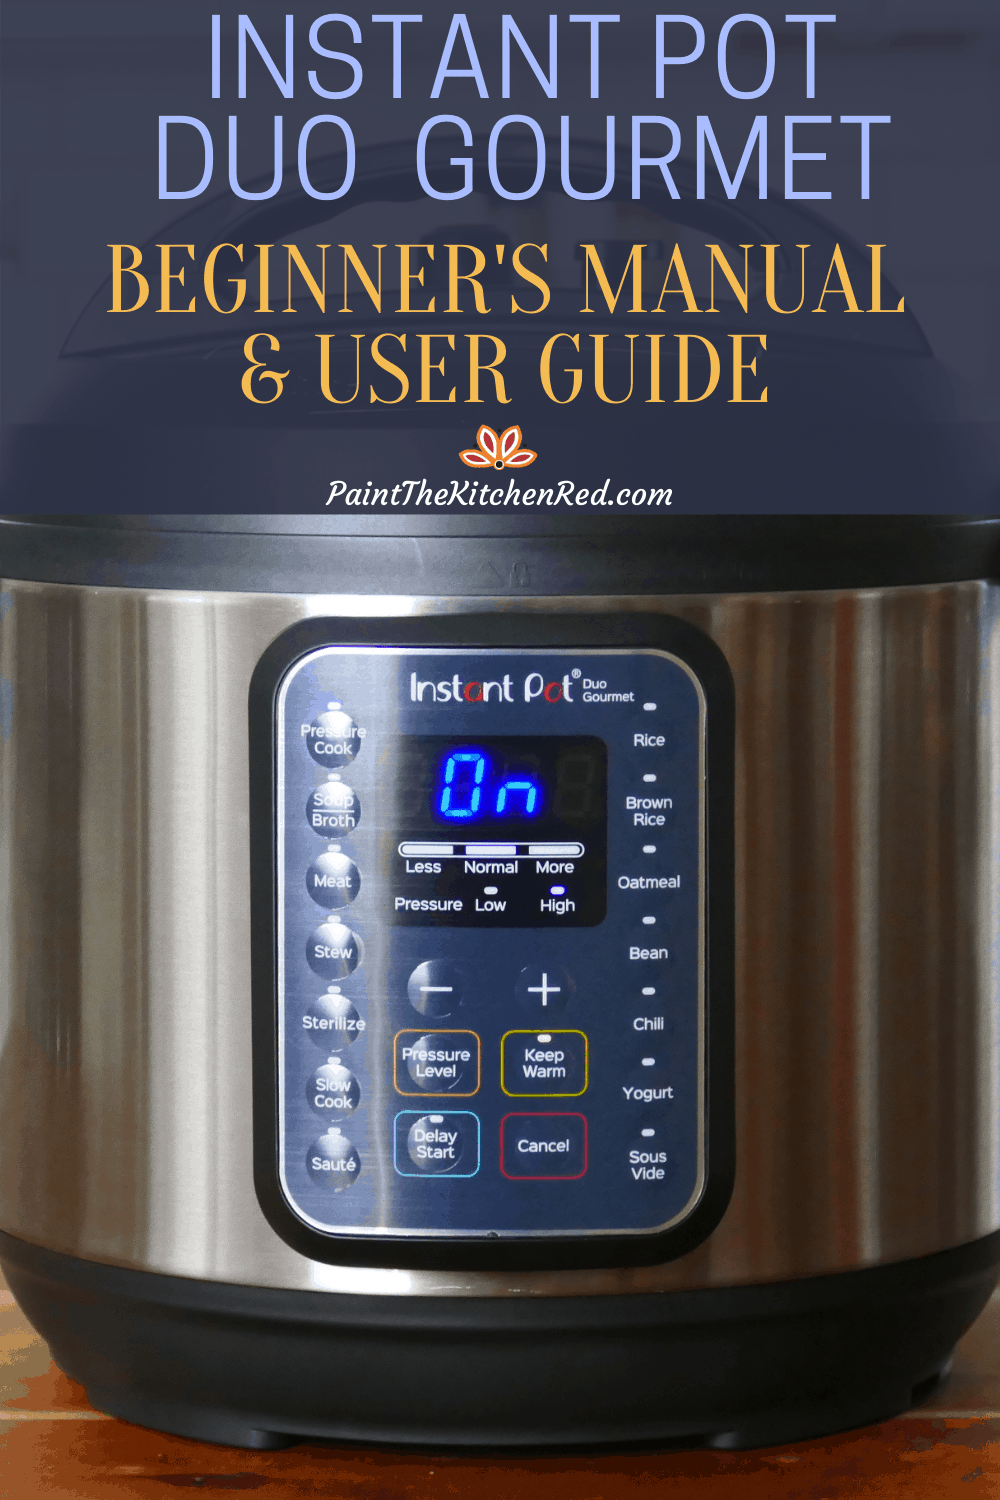 How To Use The Instant Pot Duo Gourmet Costco Instant Pot Beginner S Manual Paint The Kitchen Red Some of the pieces are really large, so. how to use the instant pot duo gourmet